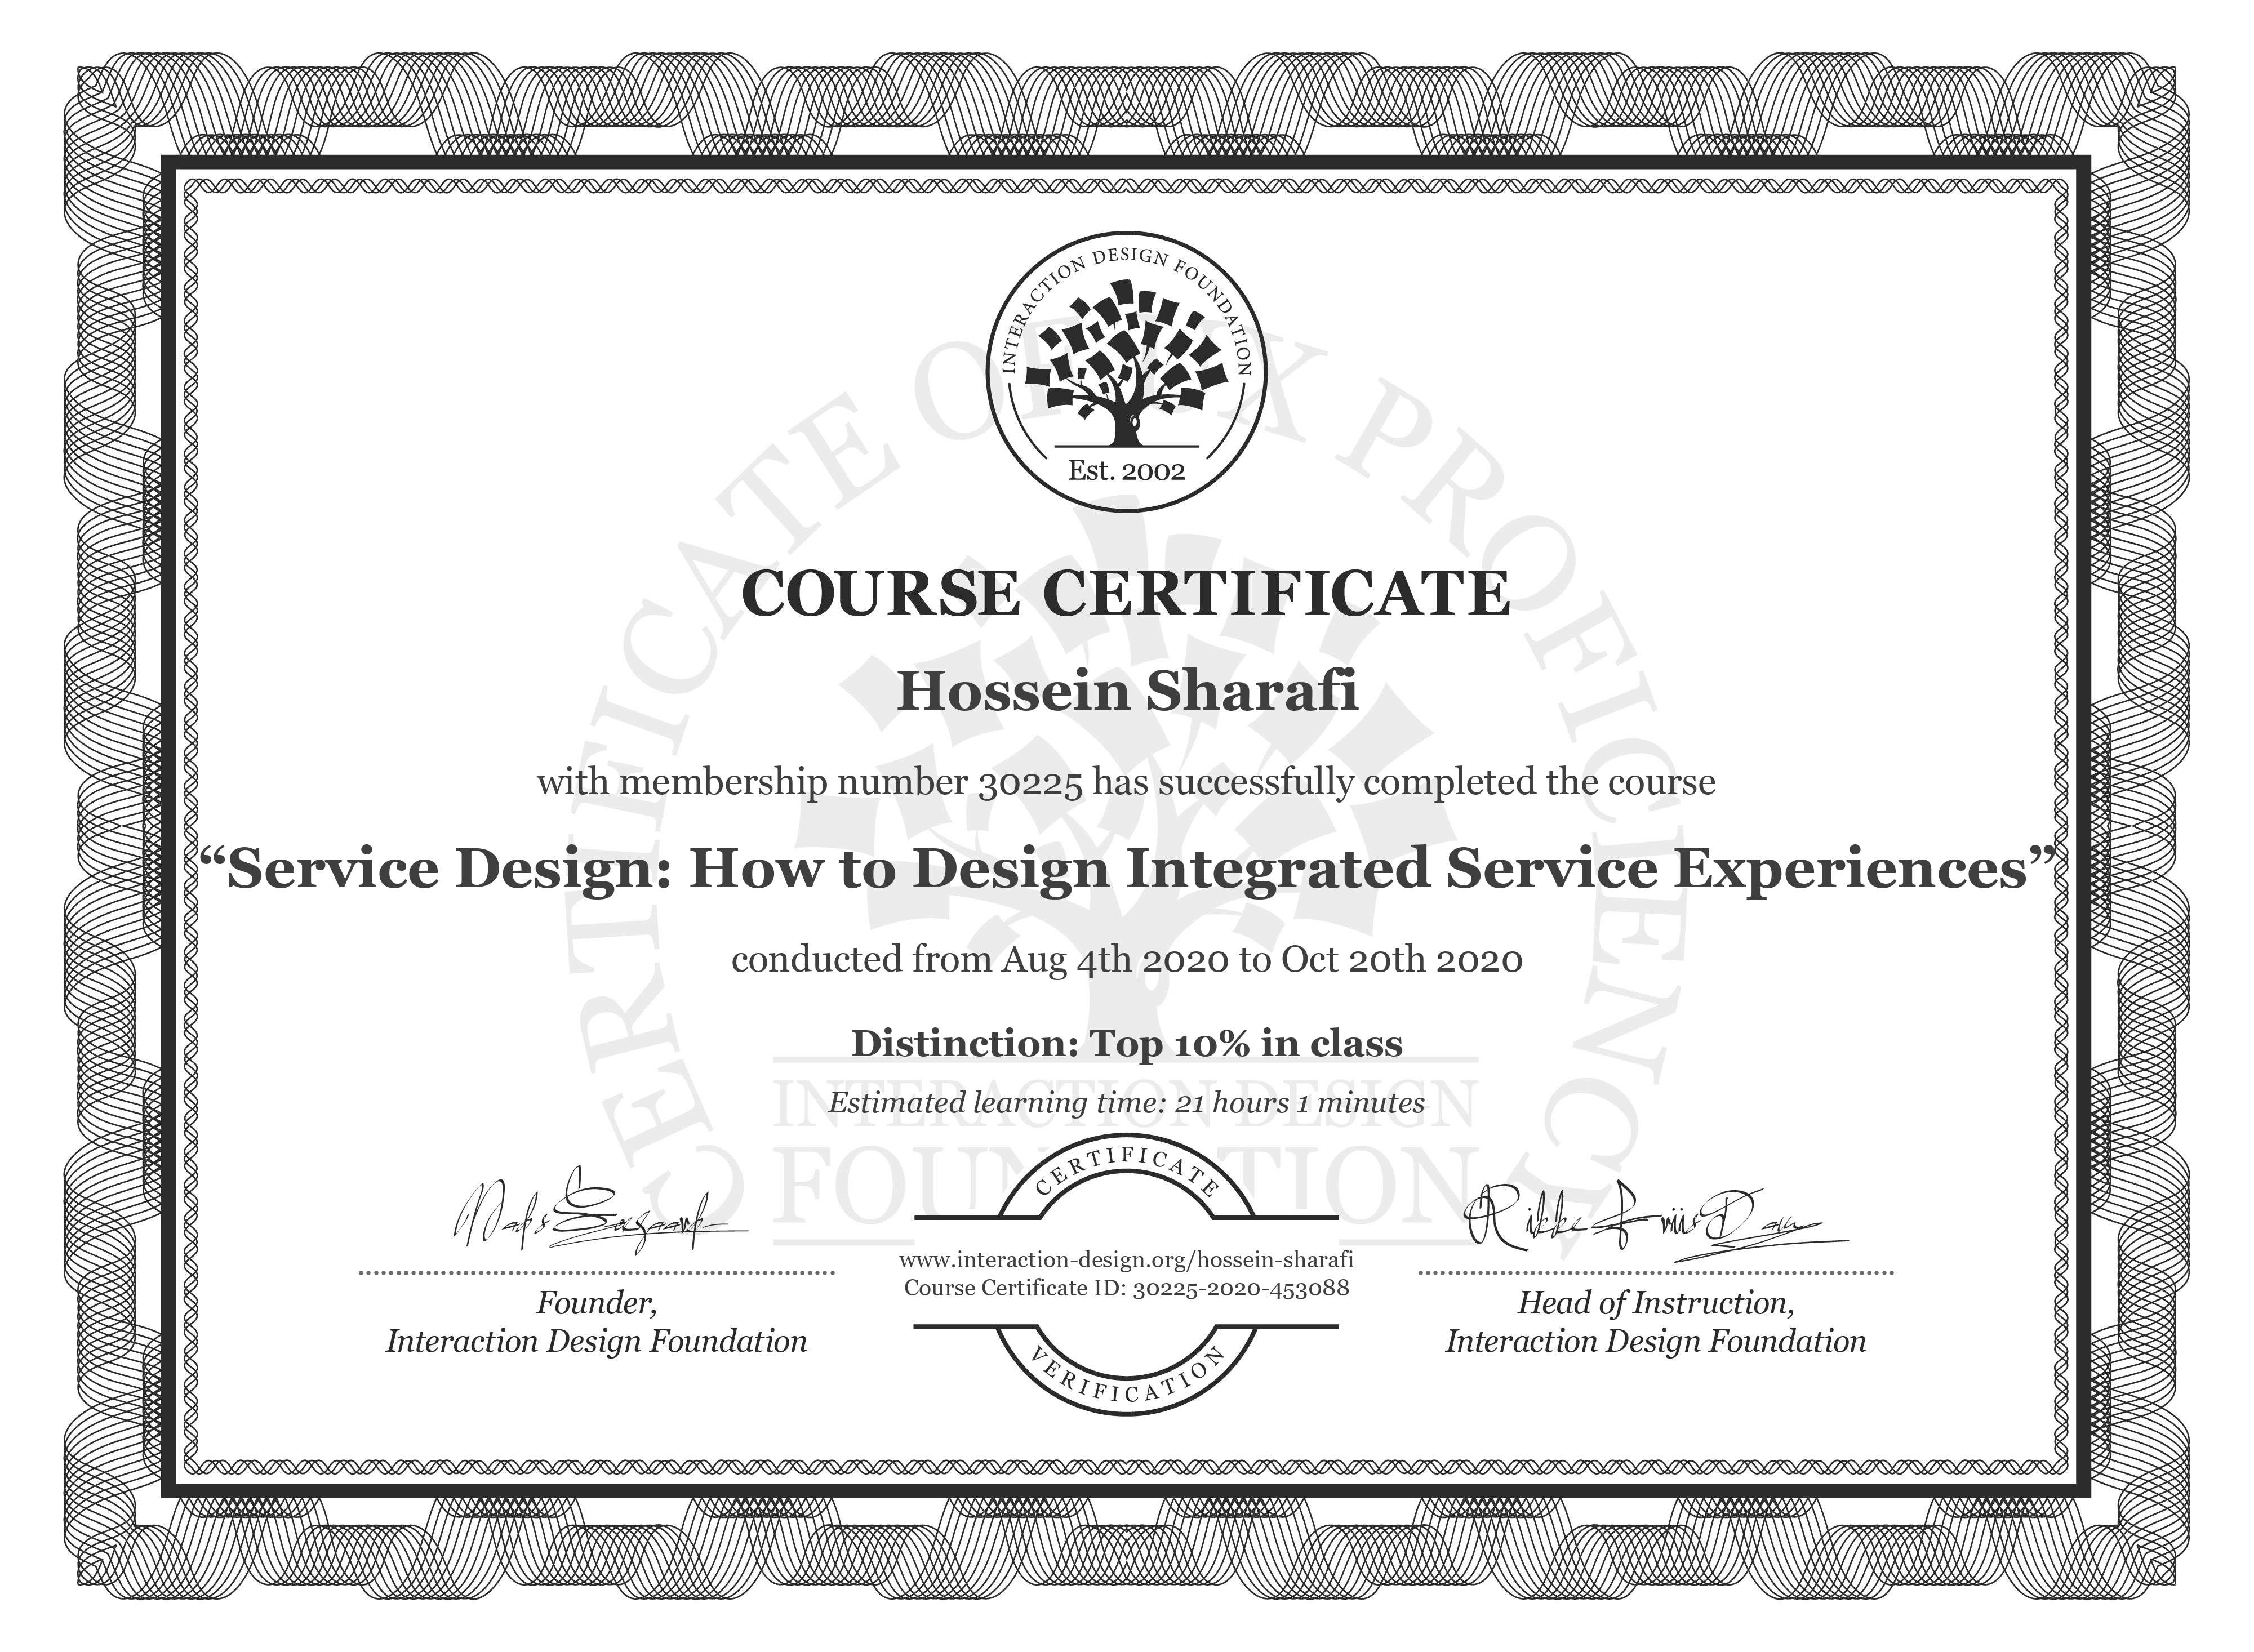 Hossein Sharafi's Course Certificate: Service Design: How to Design Integrated Service Experiences